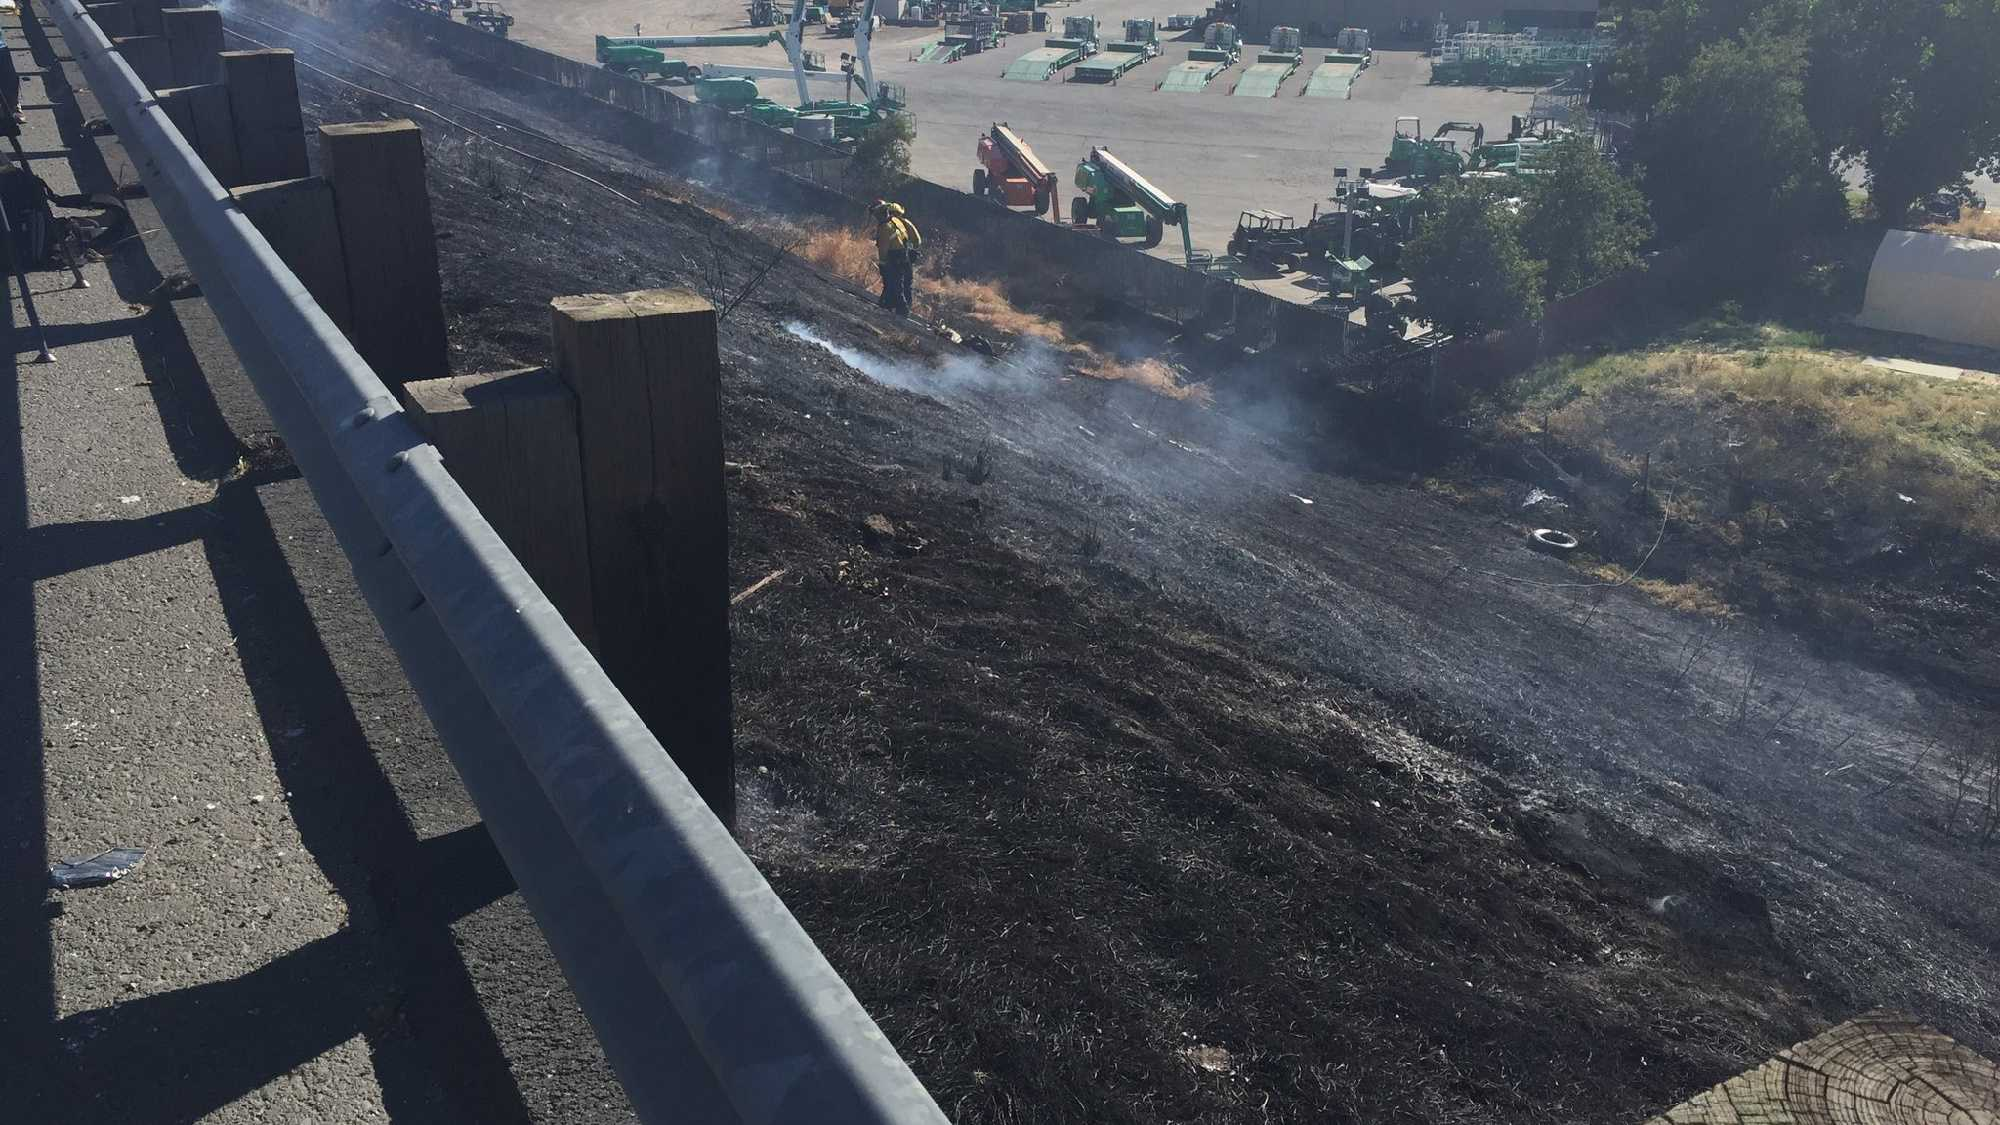 Several grass fires were deliberately set along Instate 80 on Monday, July 4, 2016, the West Sacramento Fire Department said.